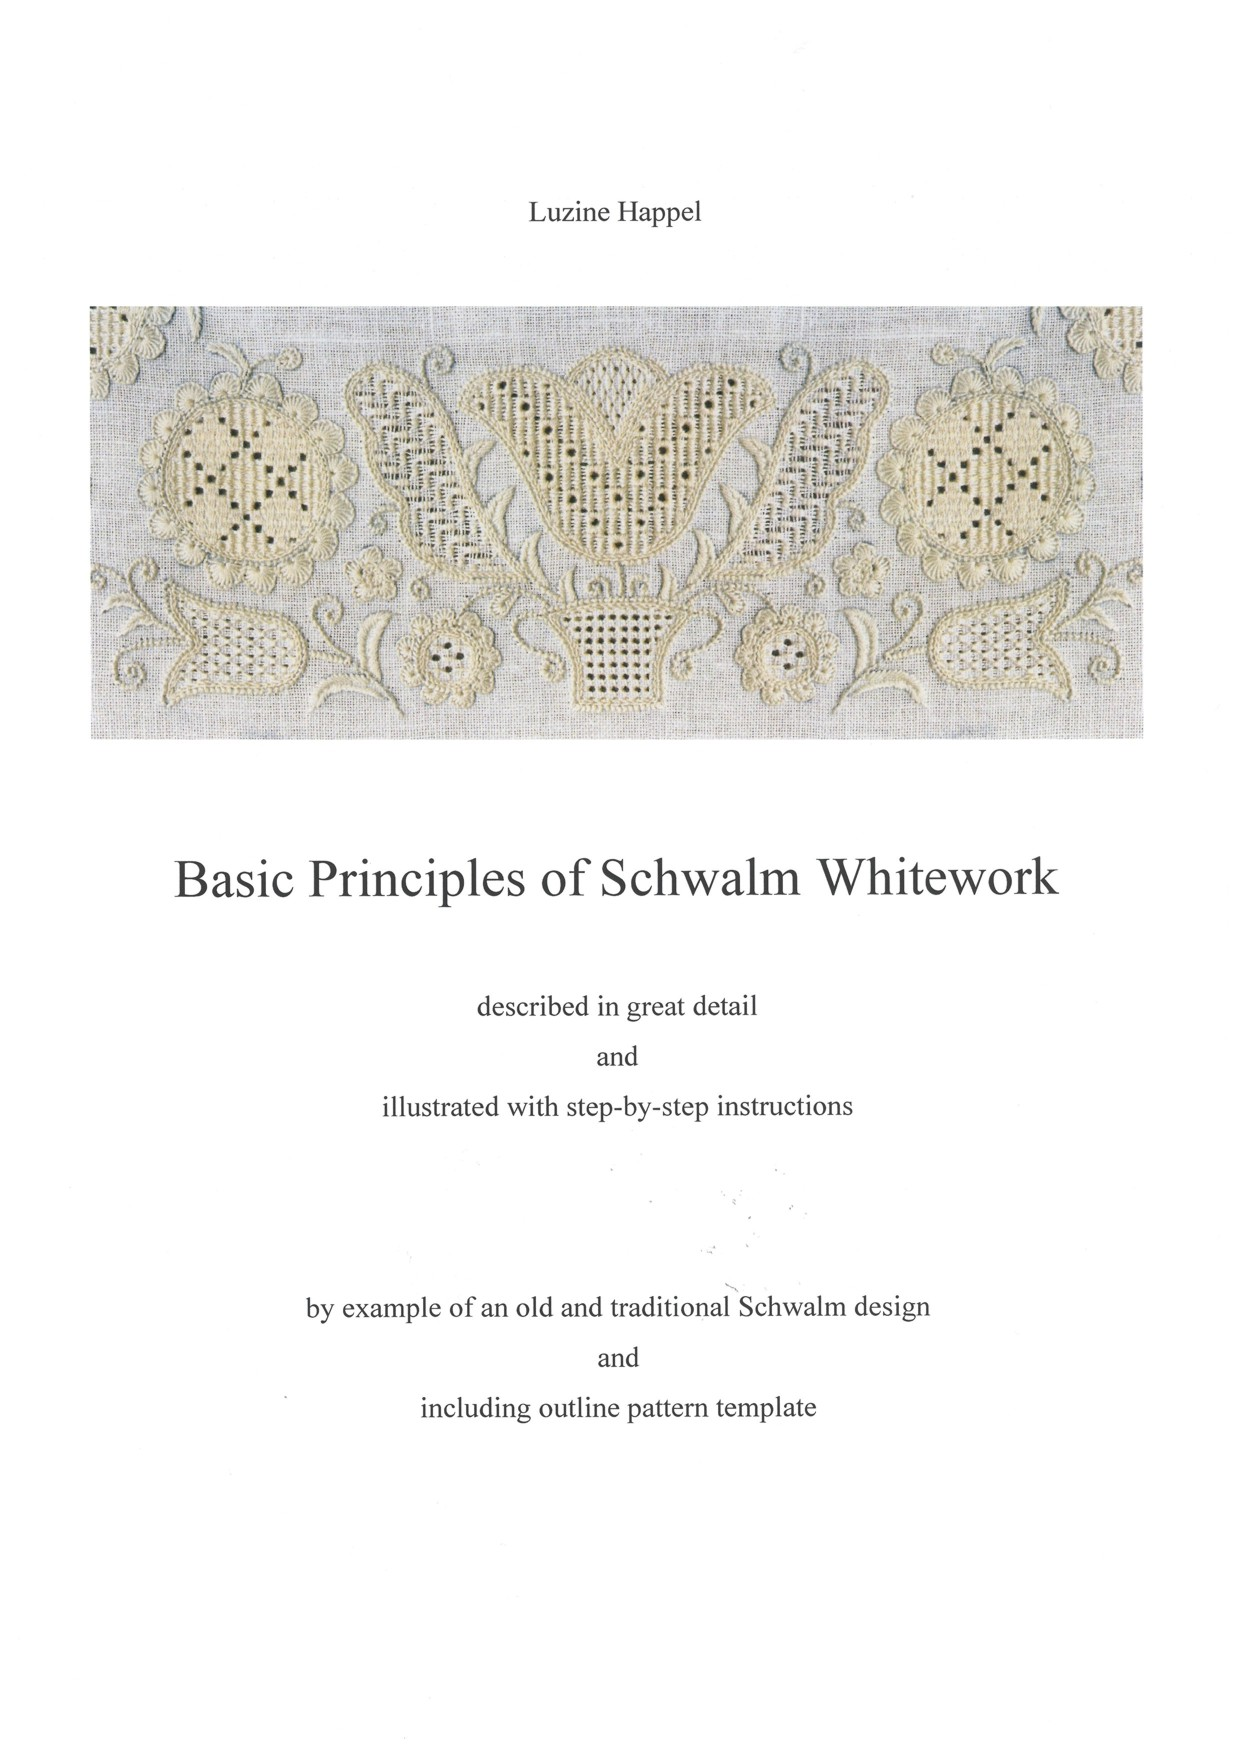 Basic Principles of Schwalm Whitework 1 / 8